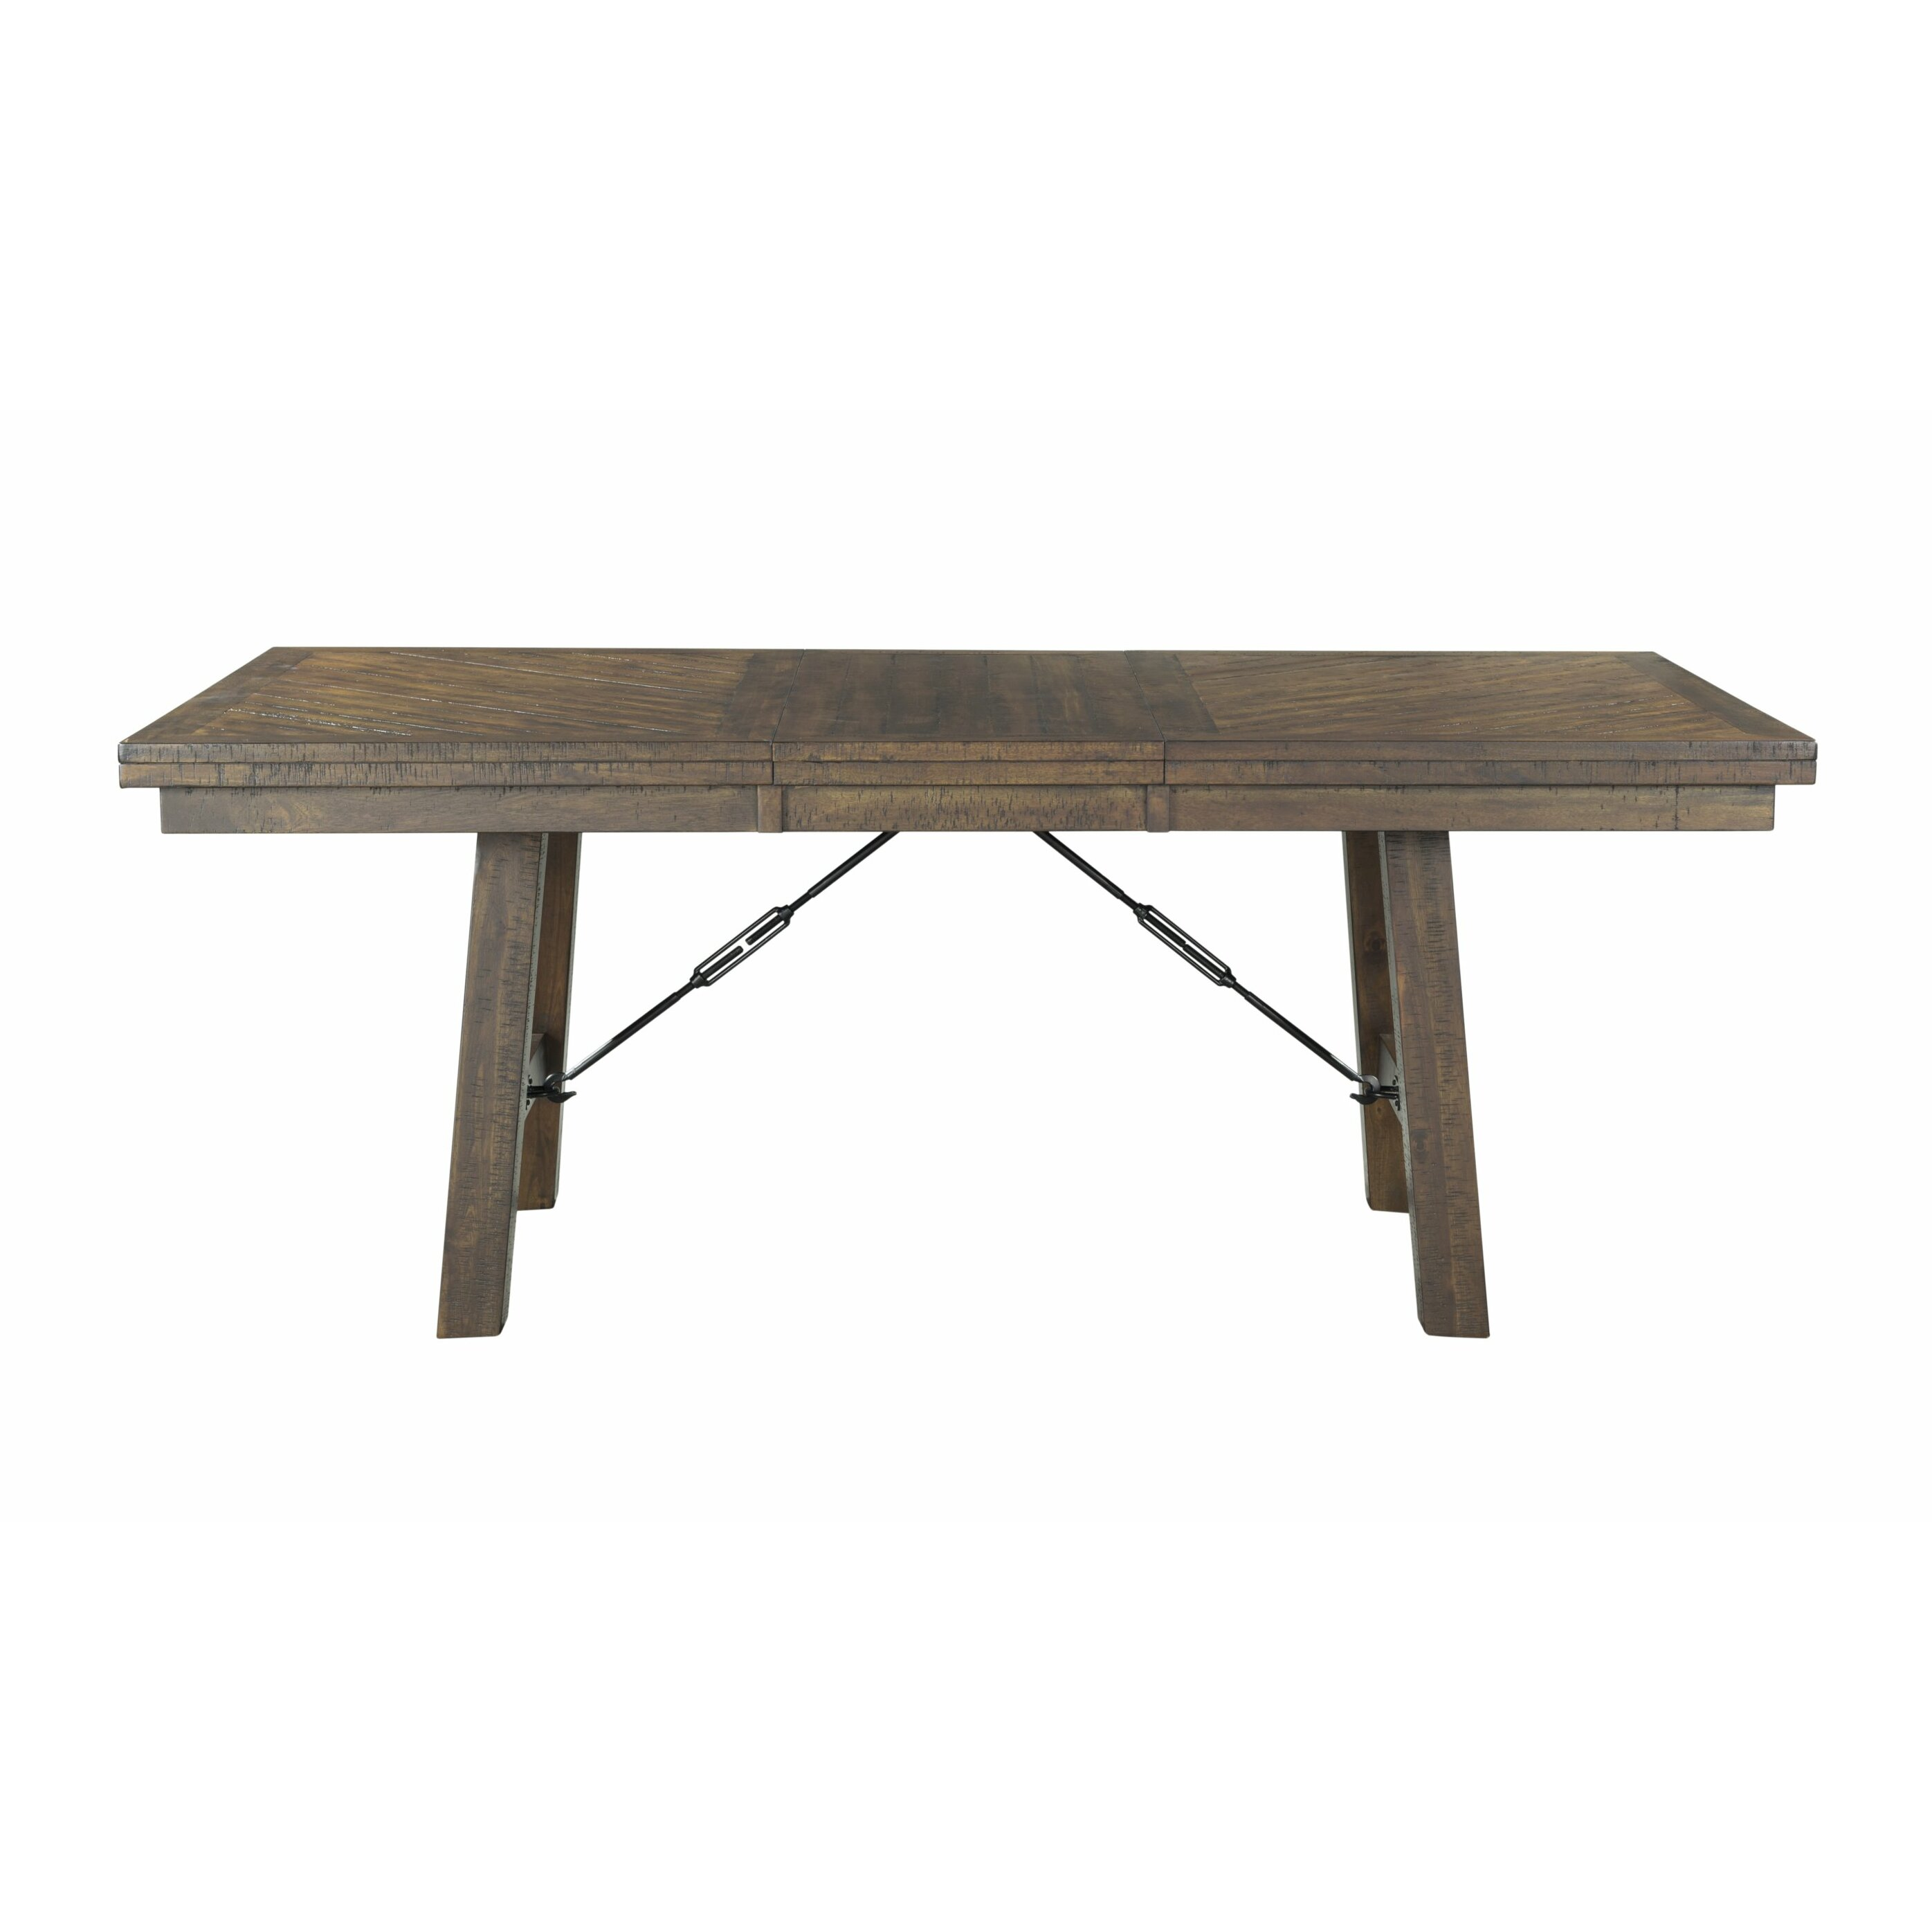 Picket House Furnishings Dex Dining Table & Reviews | Wayfair